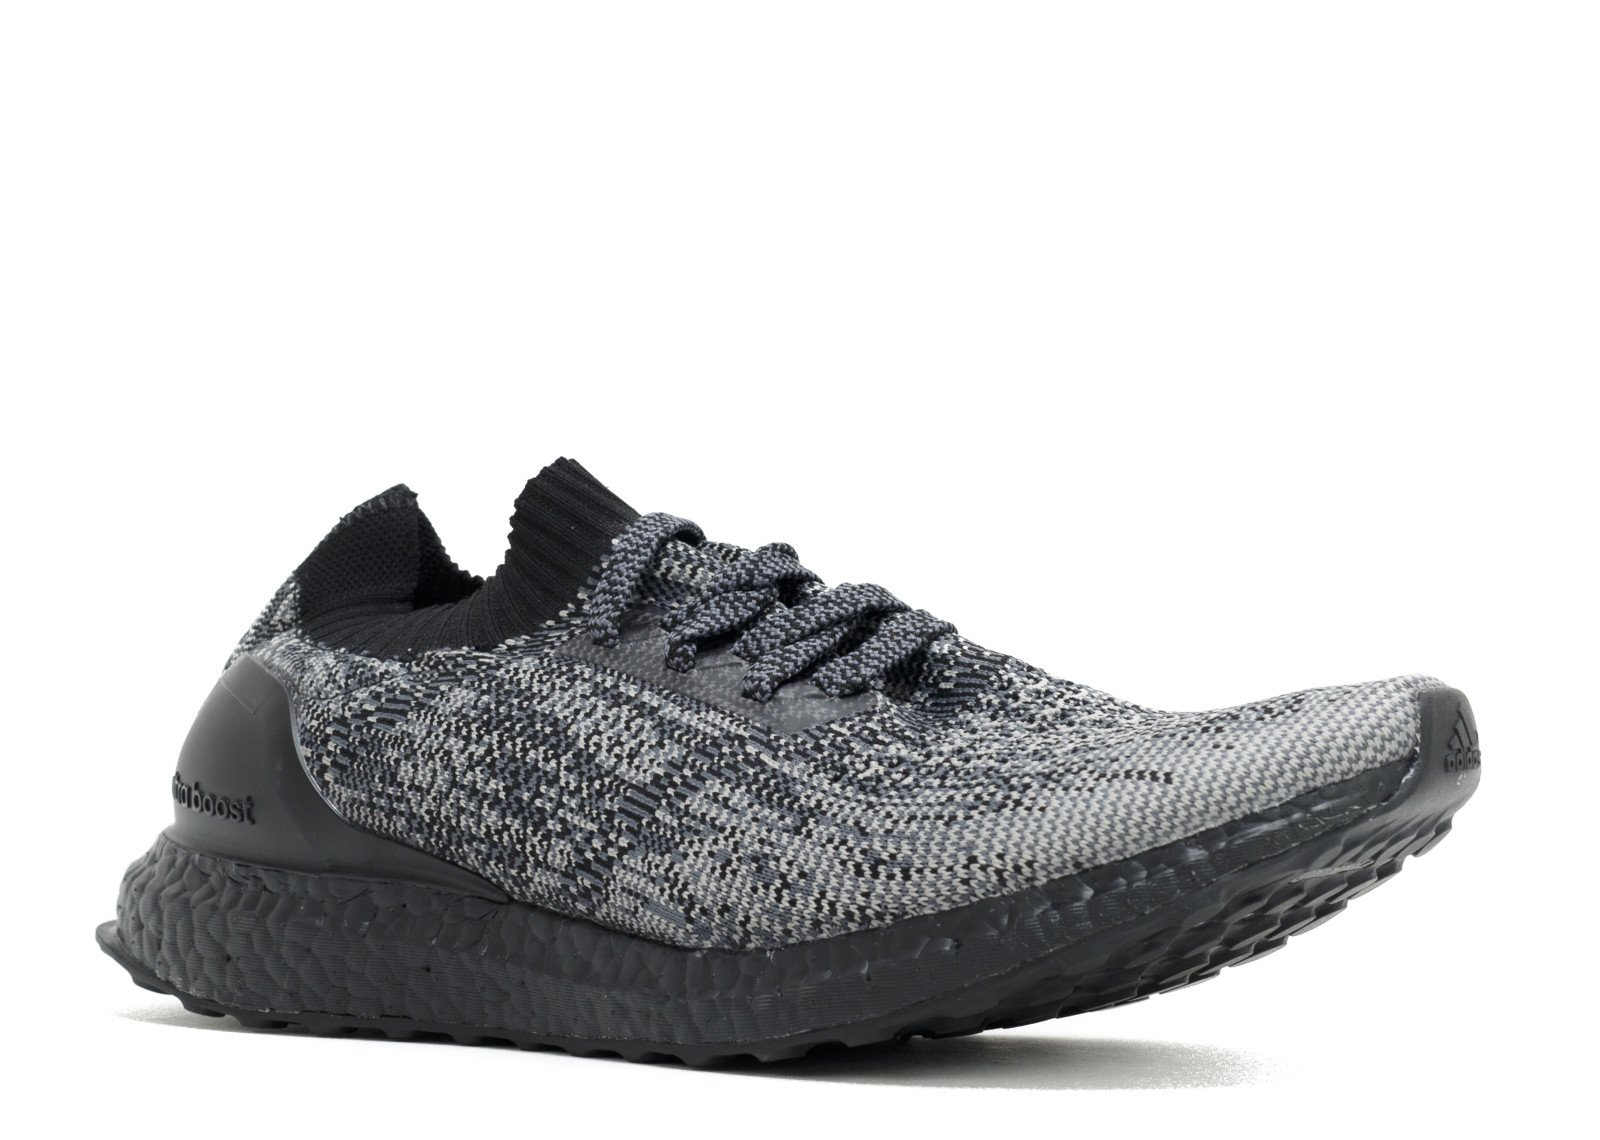 2b47265c1ea67 Adidas Ultra Boost Uncaged Black Top Deals   Lowest Price ...